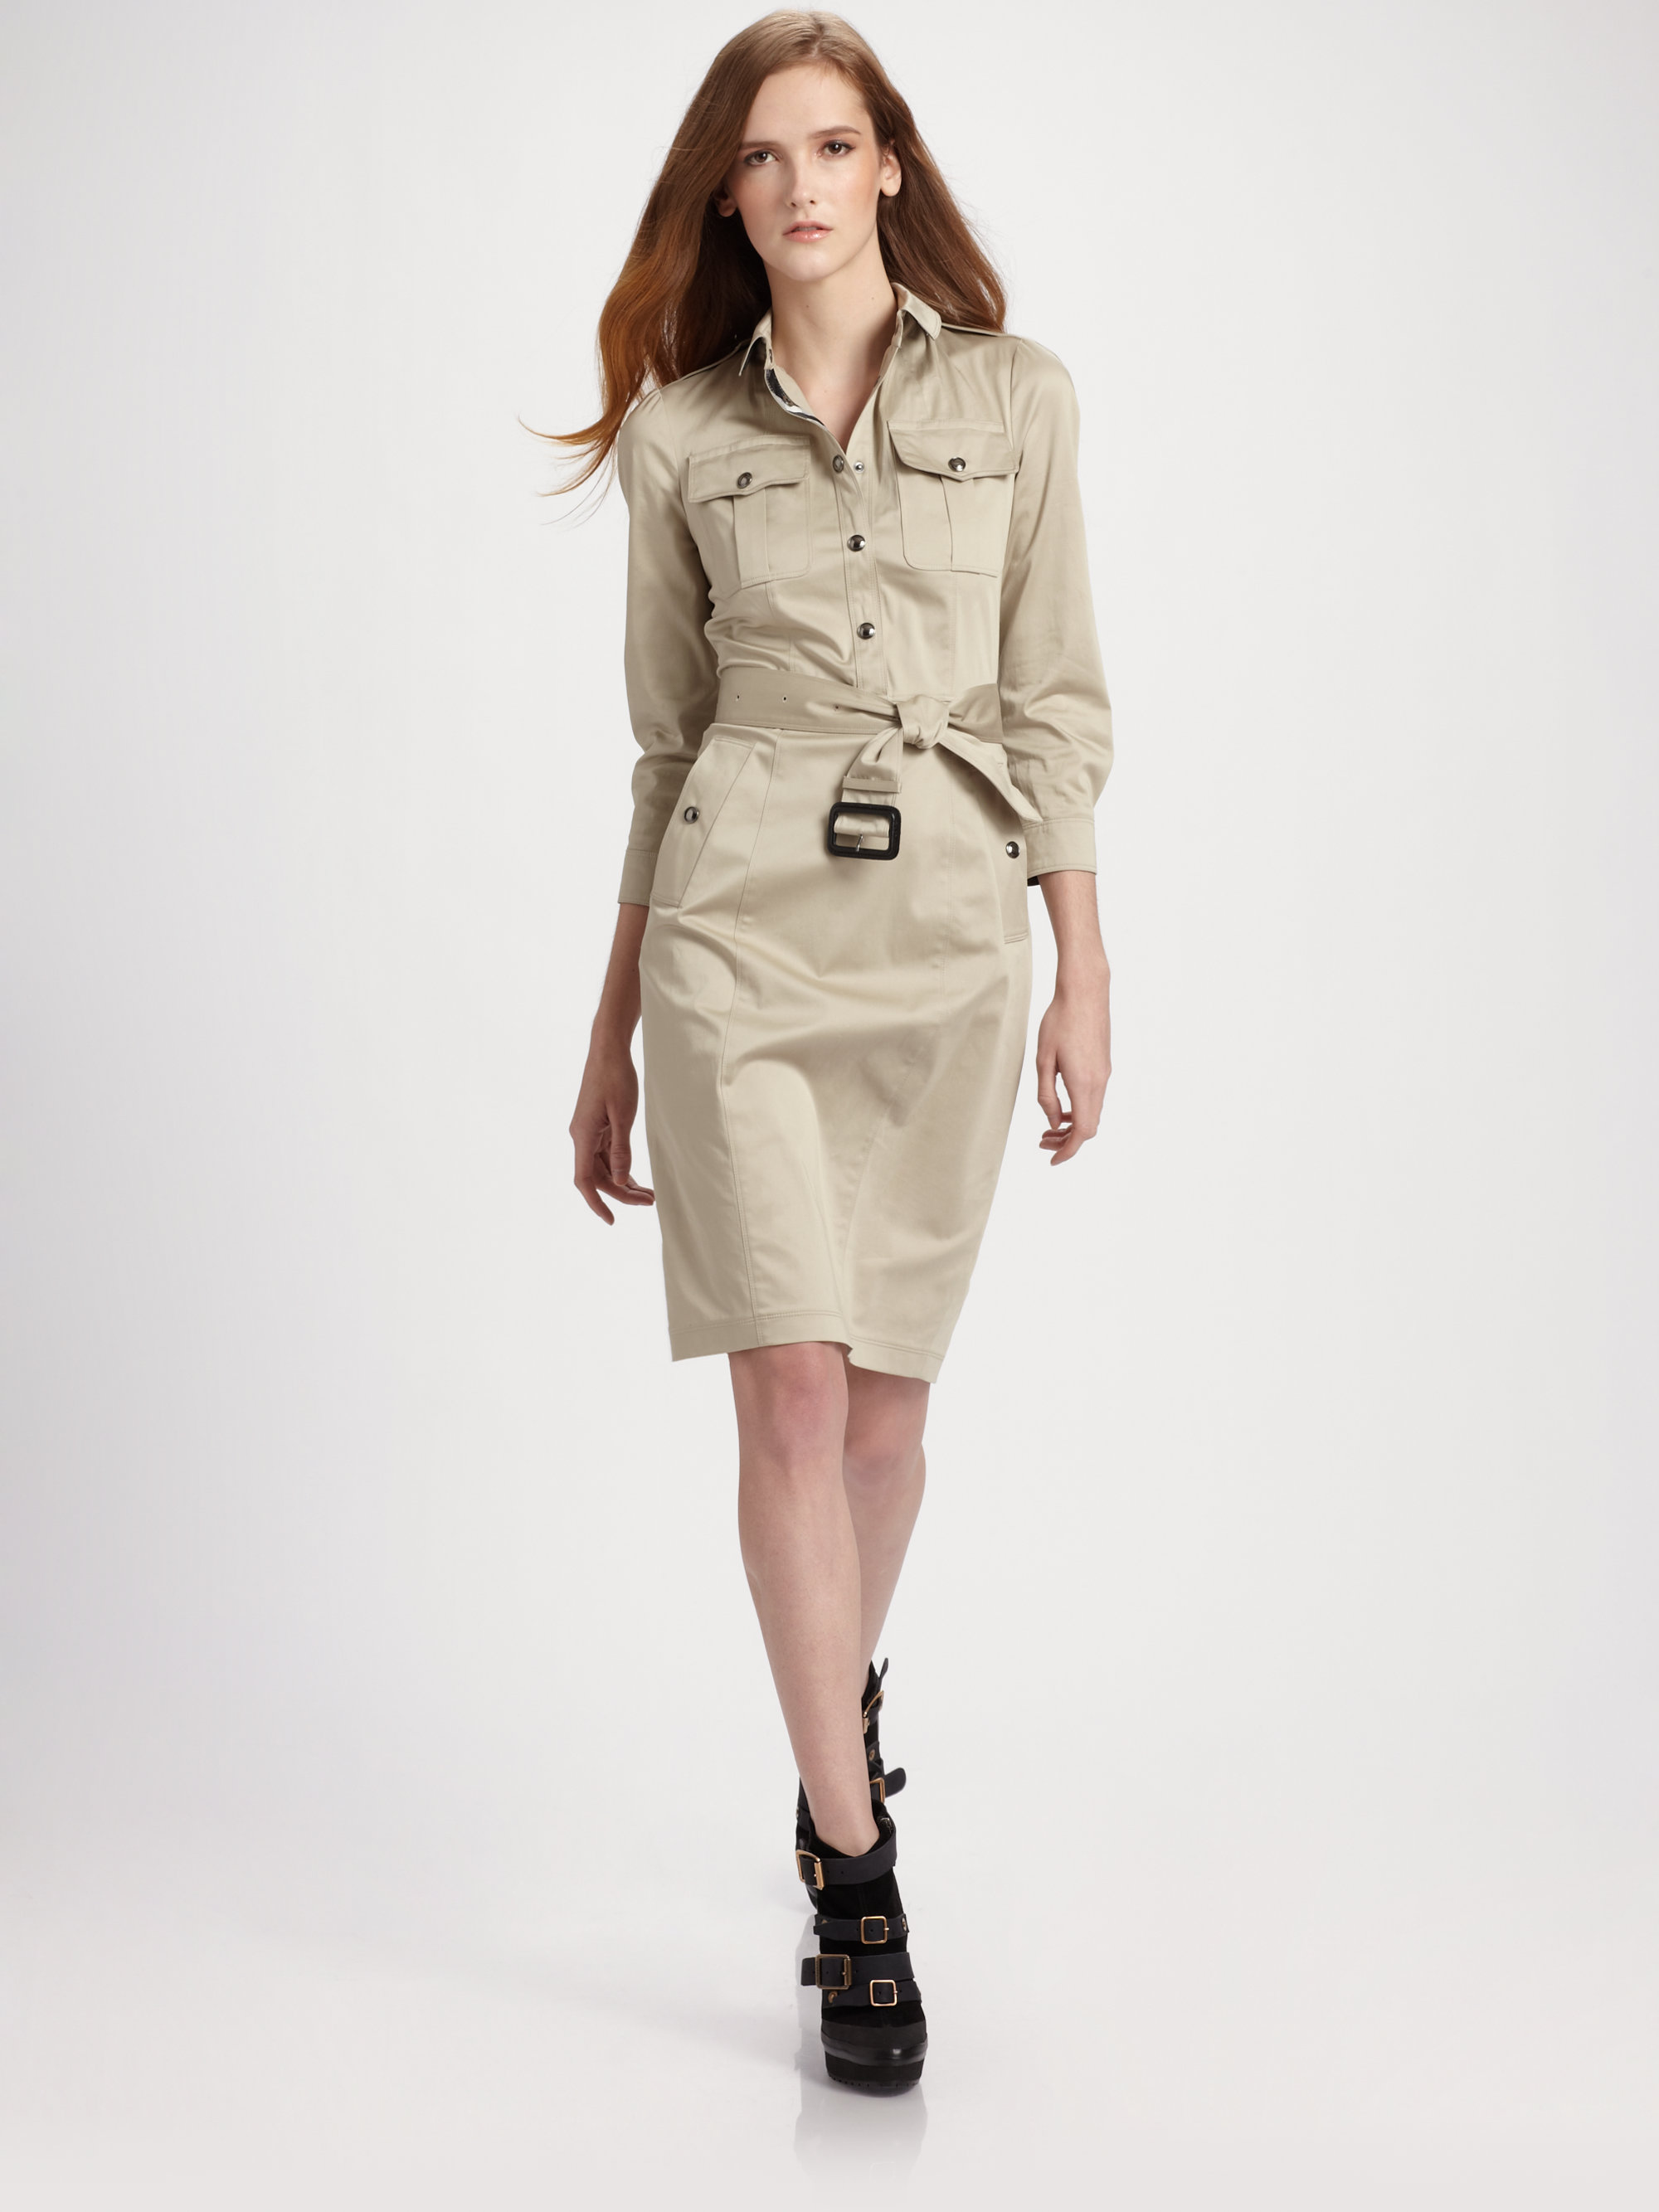 b5db065878ab92 Lyst - Burberry Caramia Belted Trench Dress in White